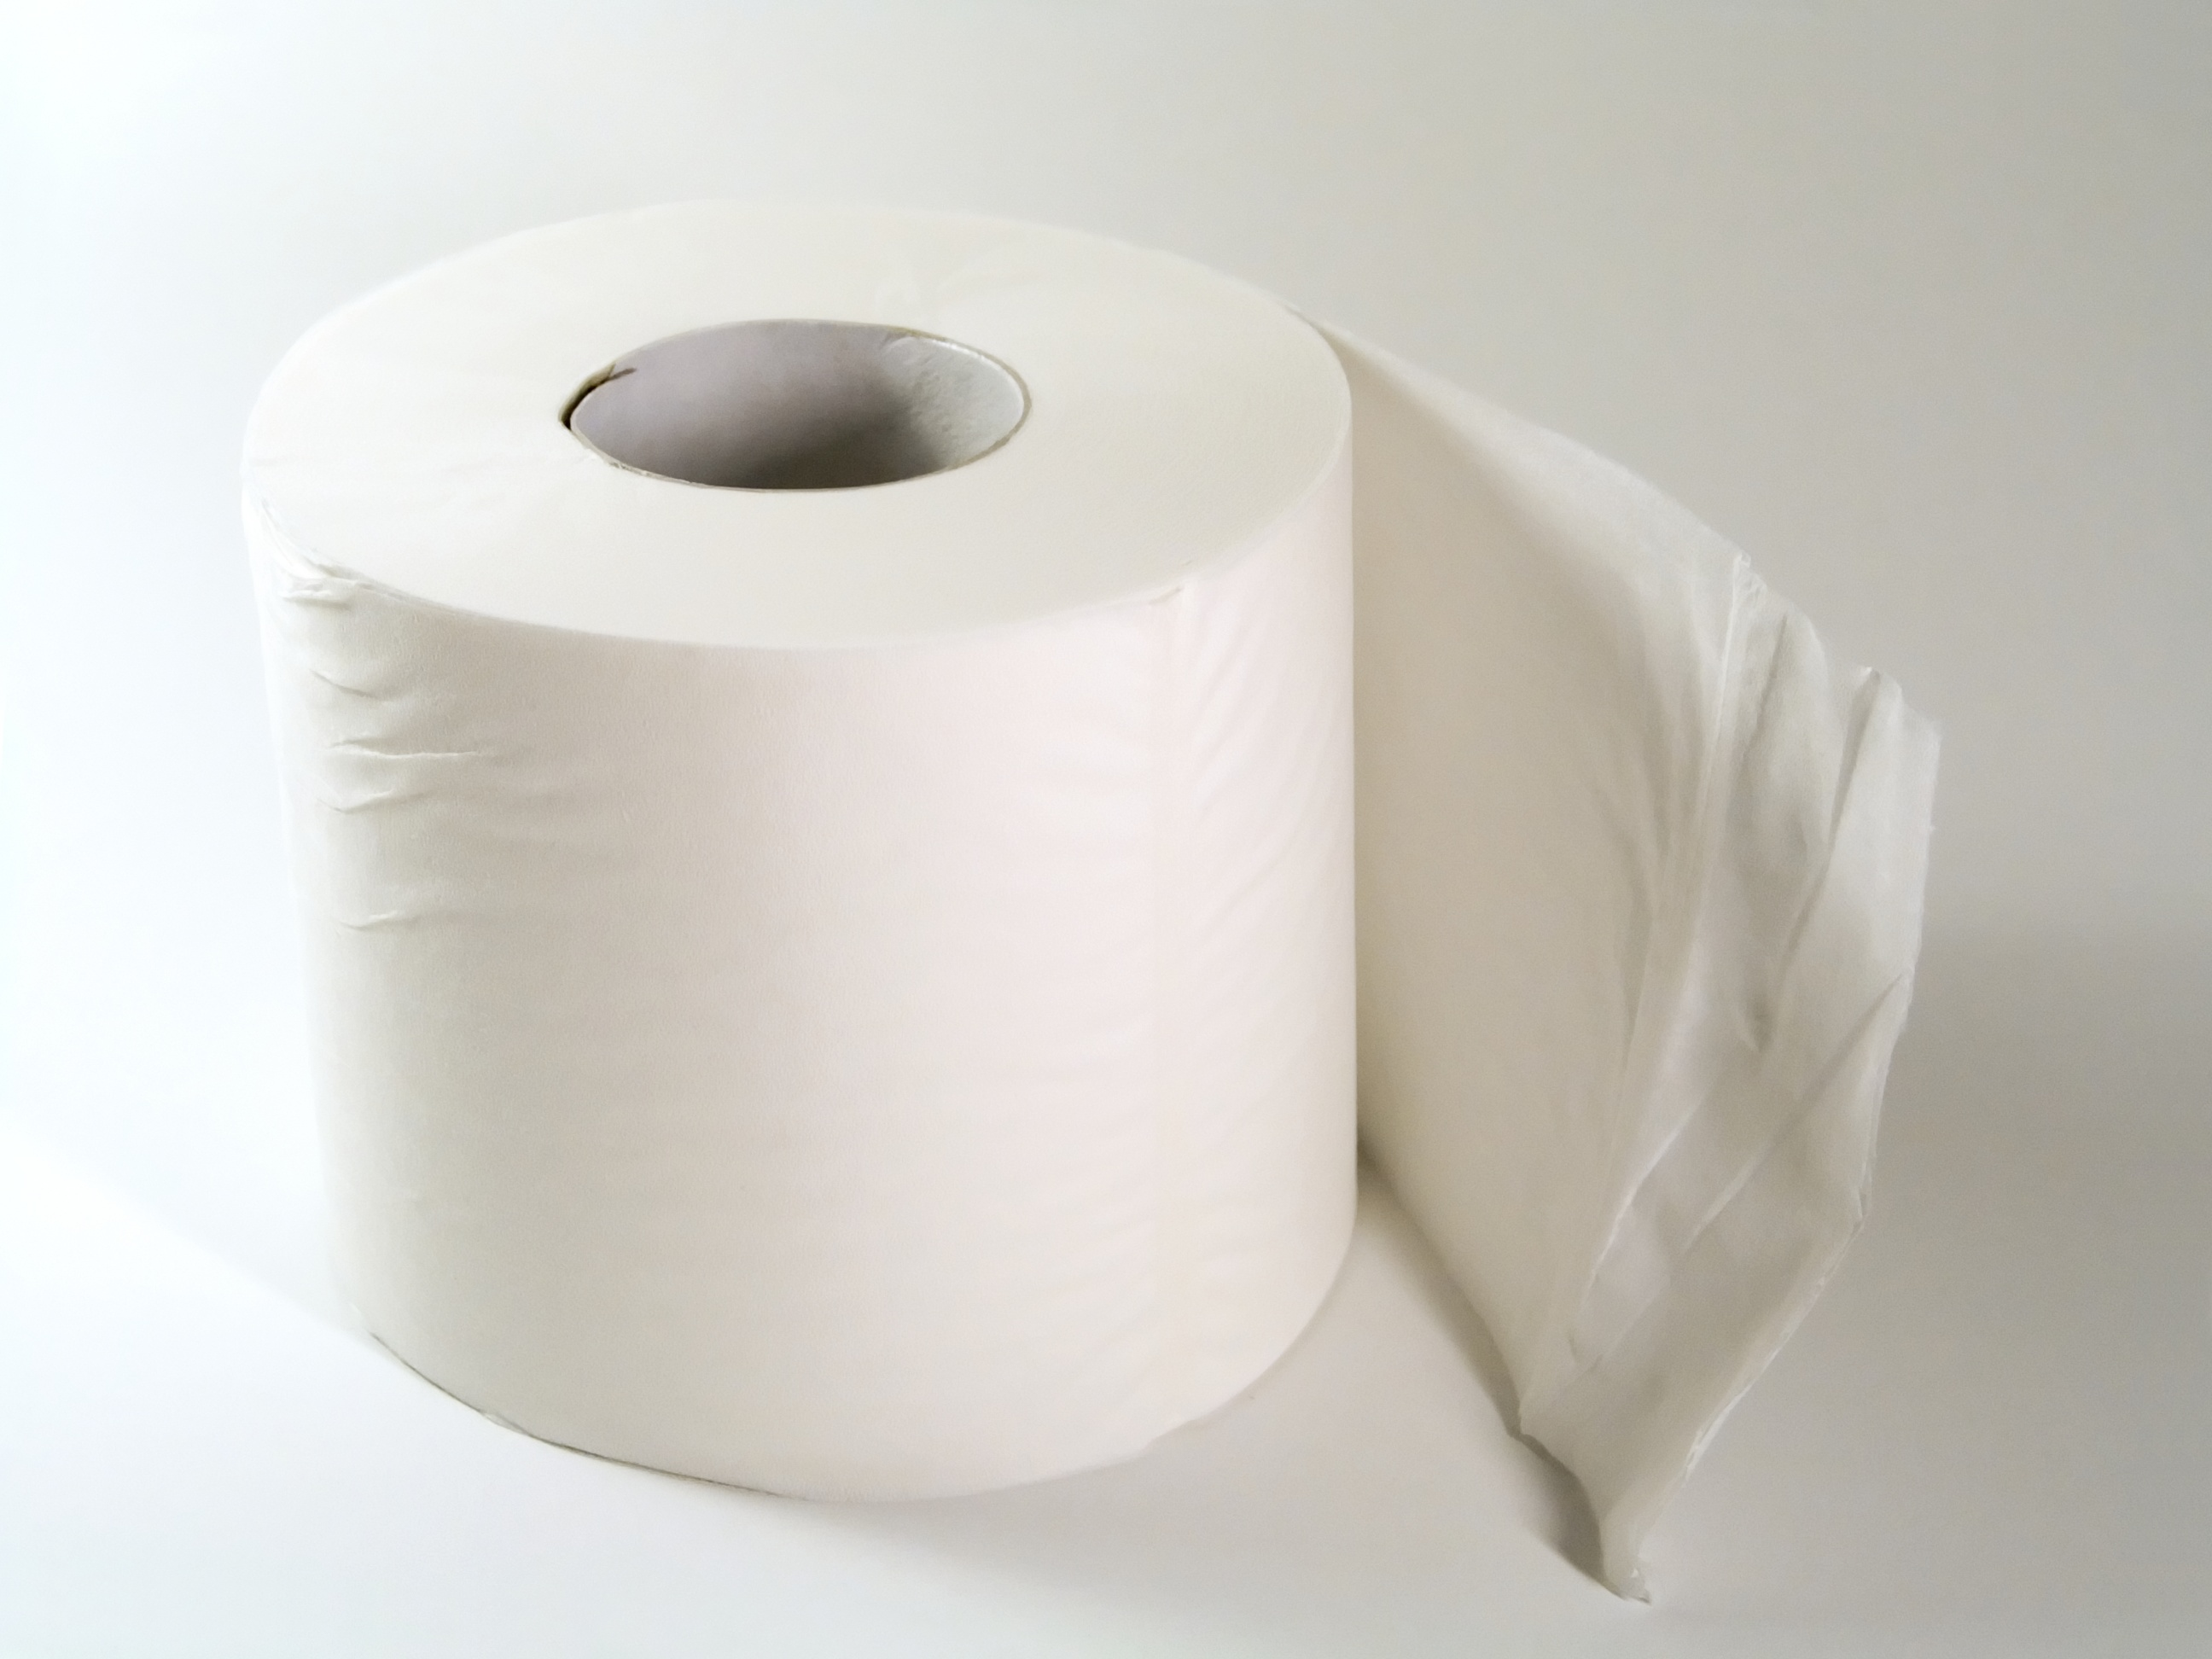 Top 10 Fascinating Facts About Toilet Paper